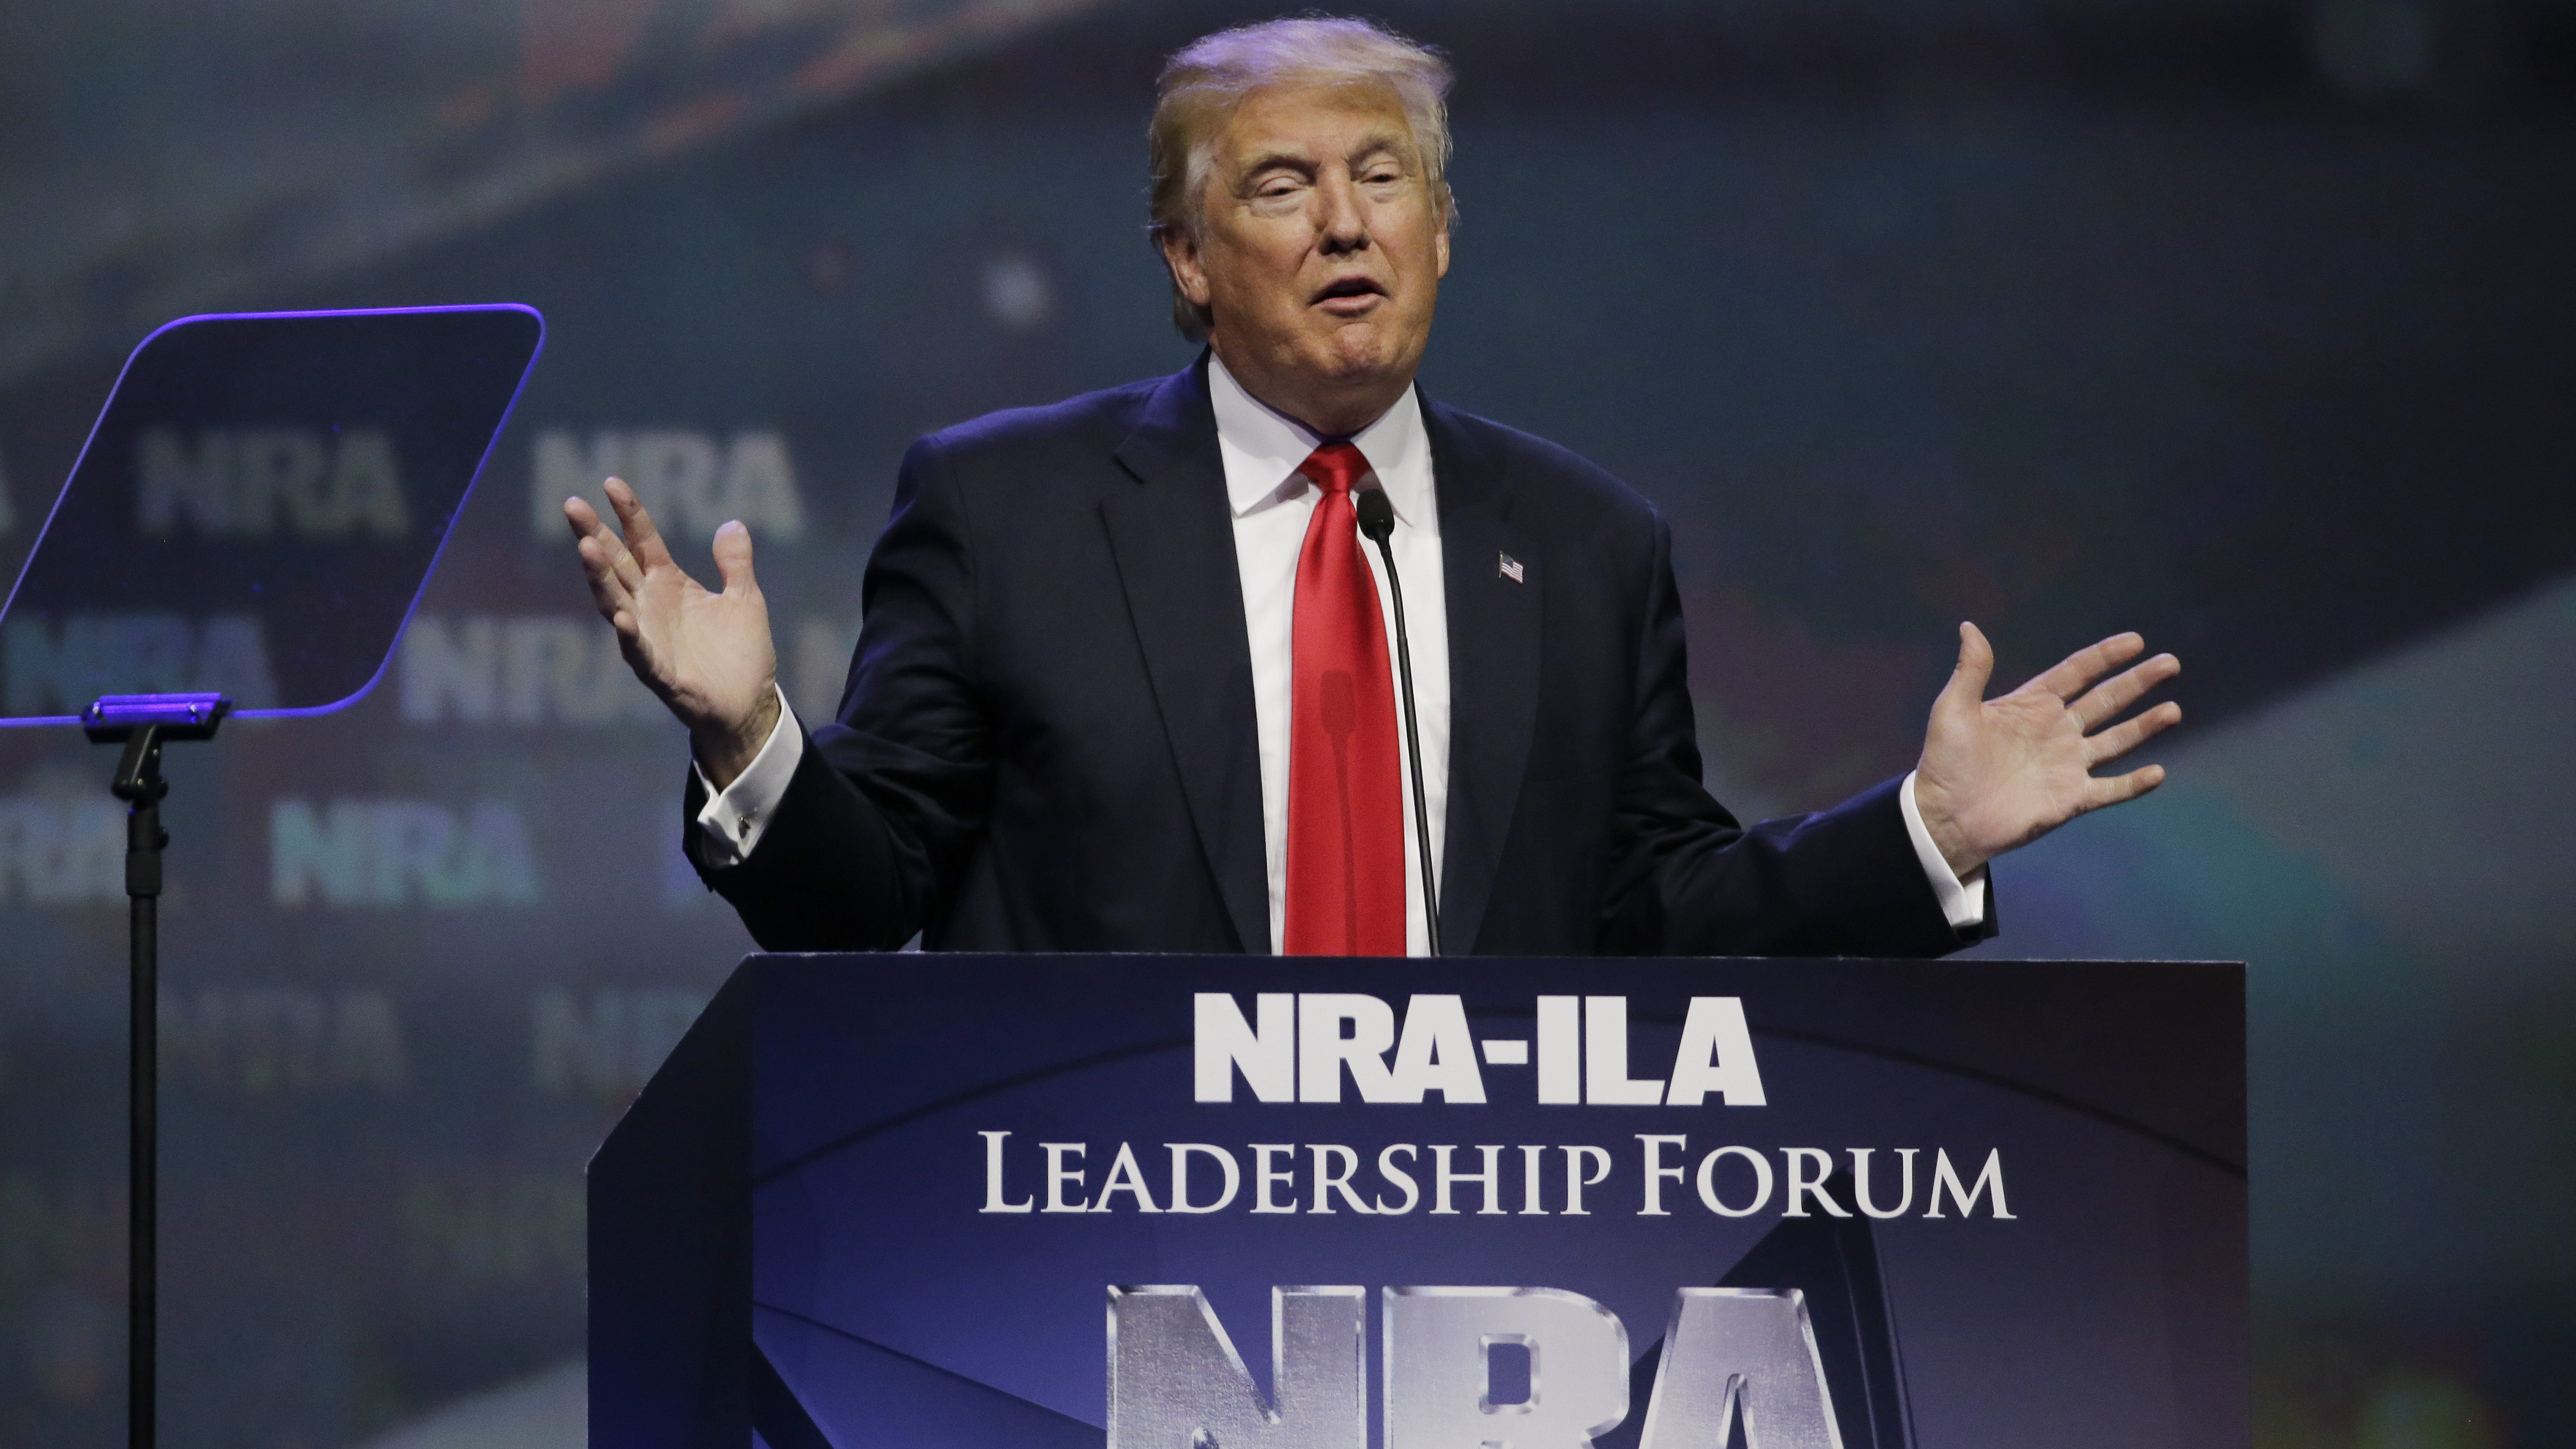 Trump's campaign received enormous support from the NRA.